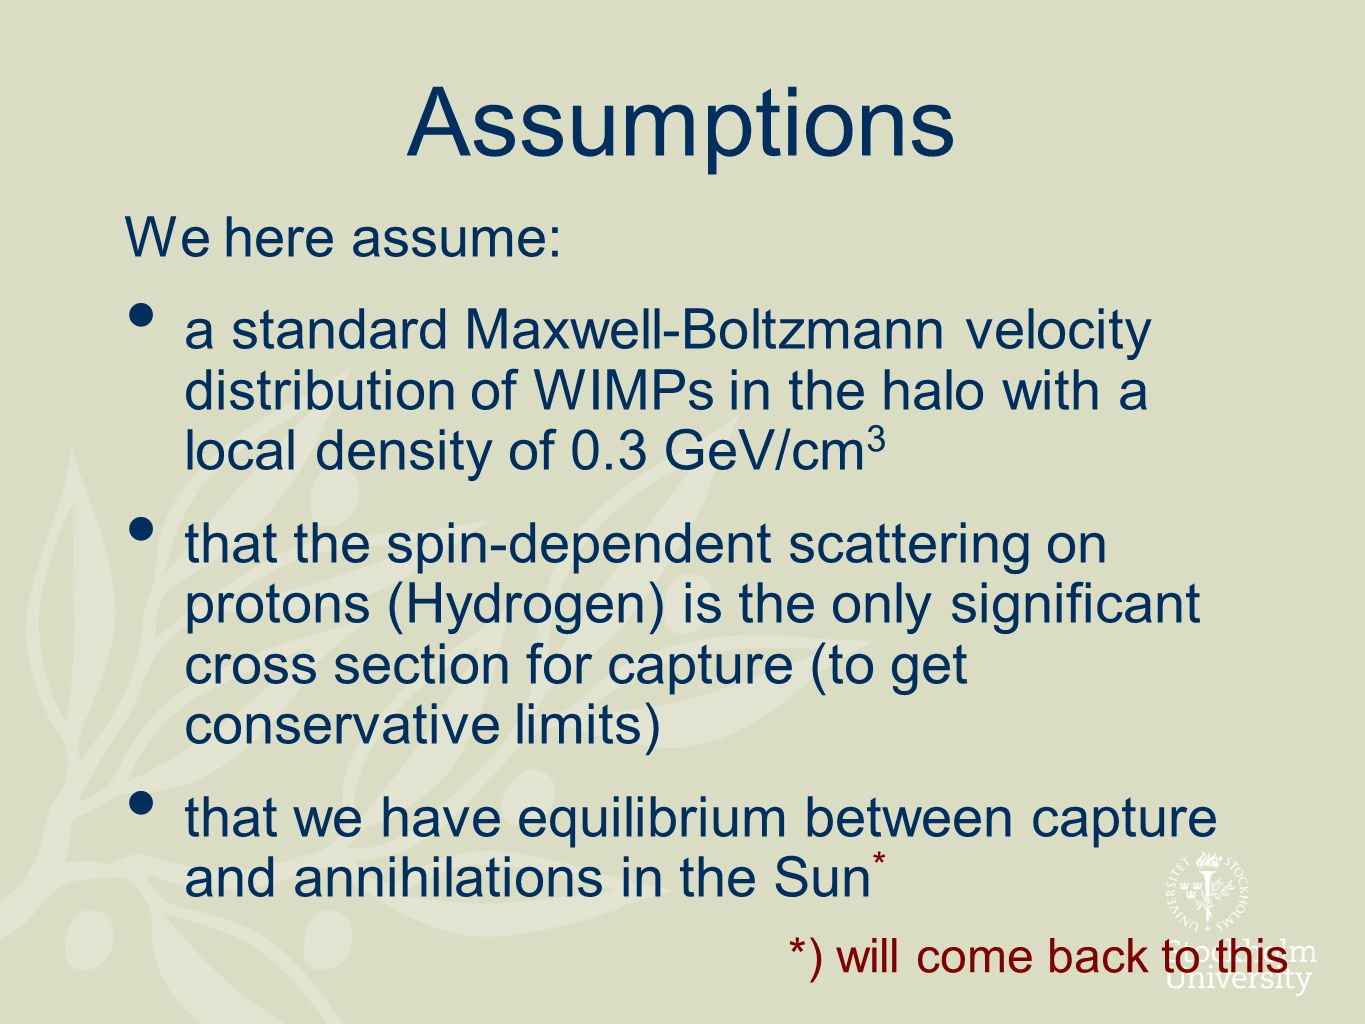 Assumptions We here assume: a standard Maxwell-Boltzmann velocity distribution of WIMPs in the halo with a local density of 0.3 GeV/cm 3 that the spin-dependent scattering on protons (Hydrogen) is the only significant cross section for capture (to get conservative limits) that we have equilibrium between capture and annihilations in the Sun * *) will come back to this